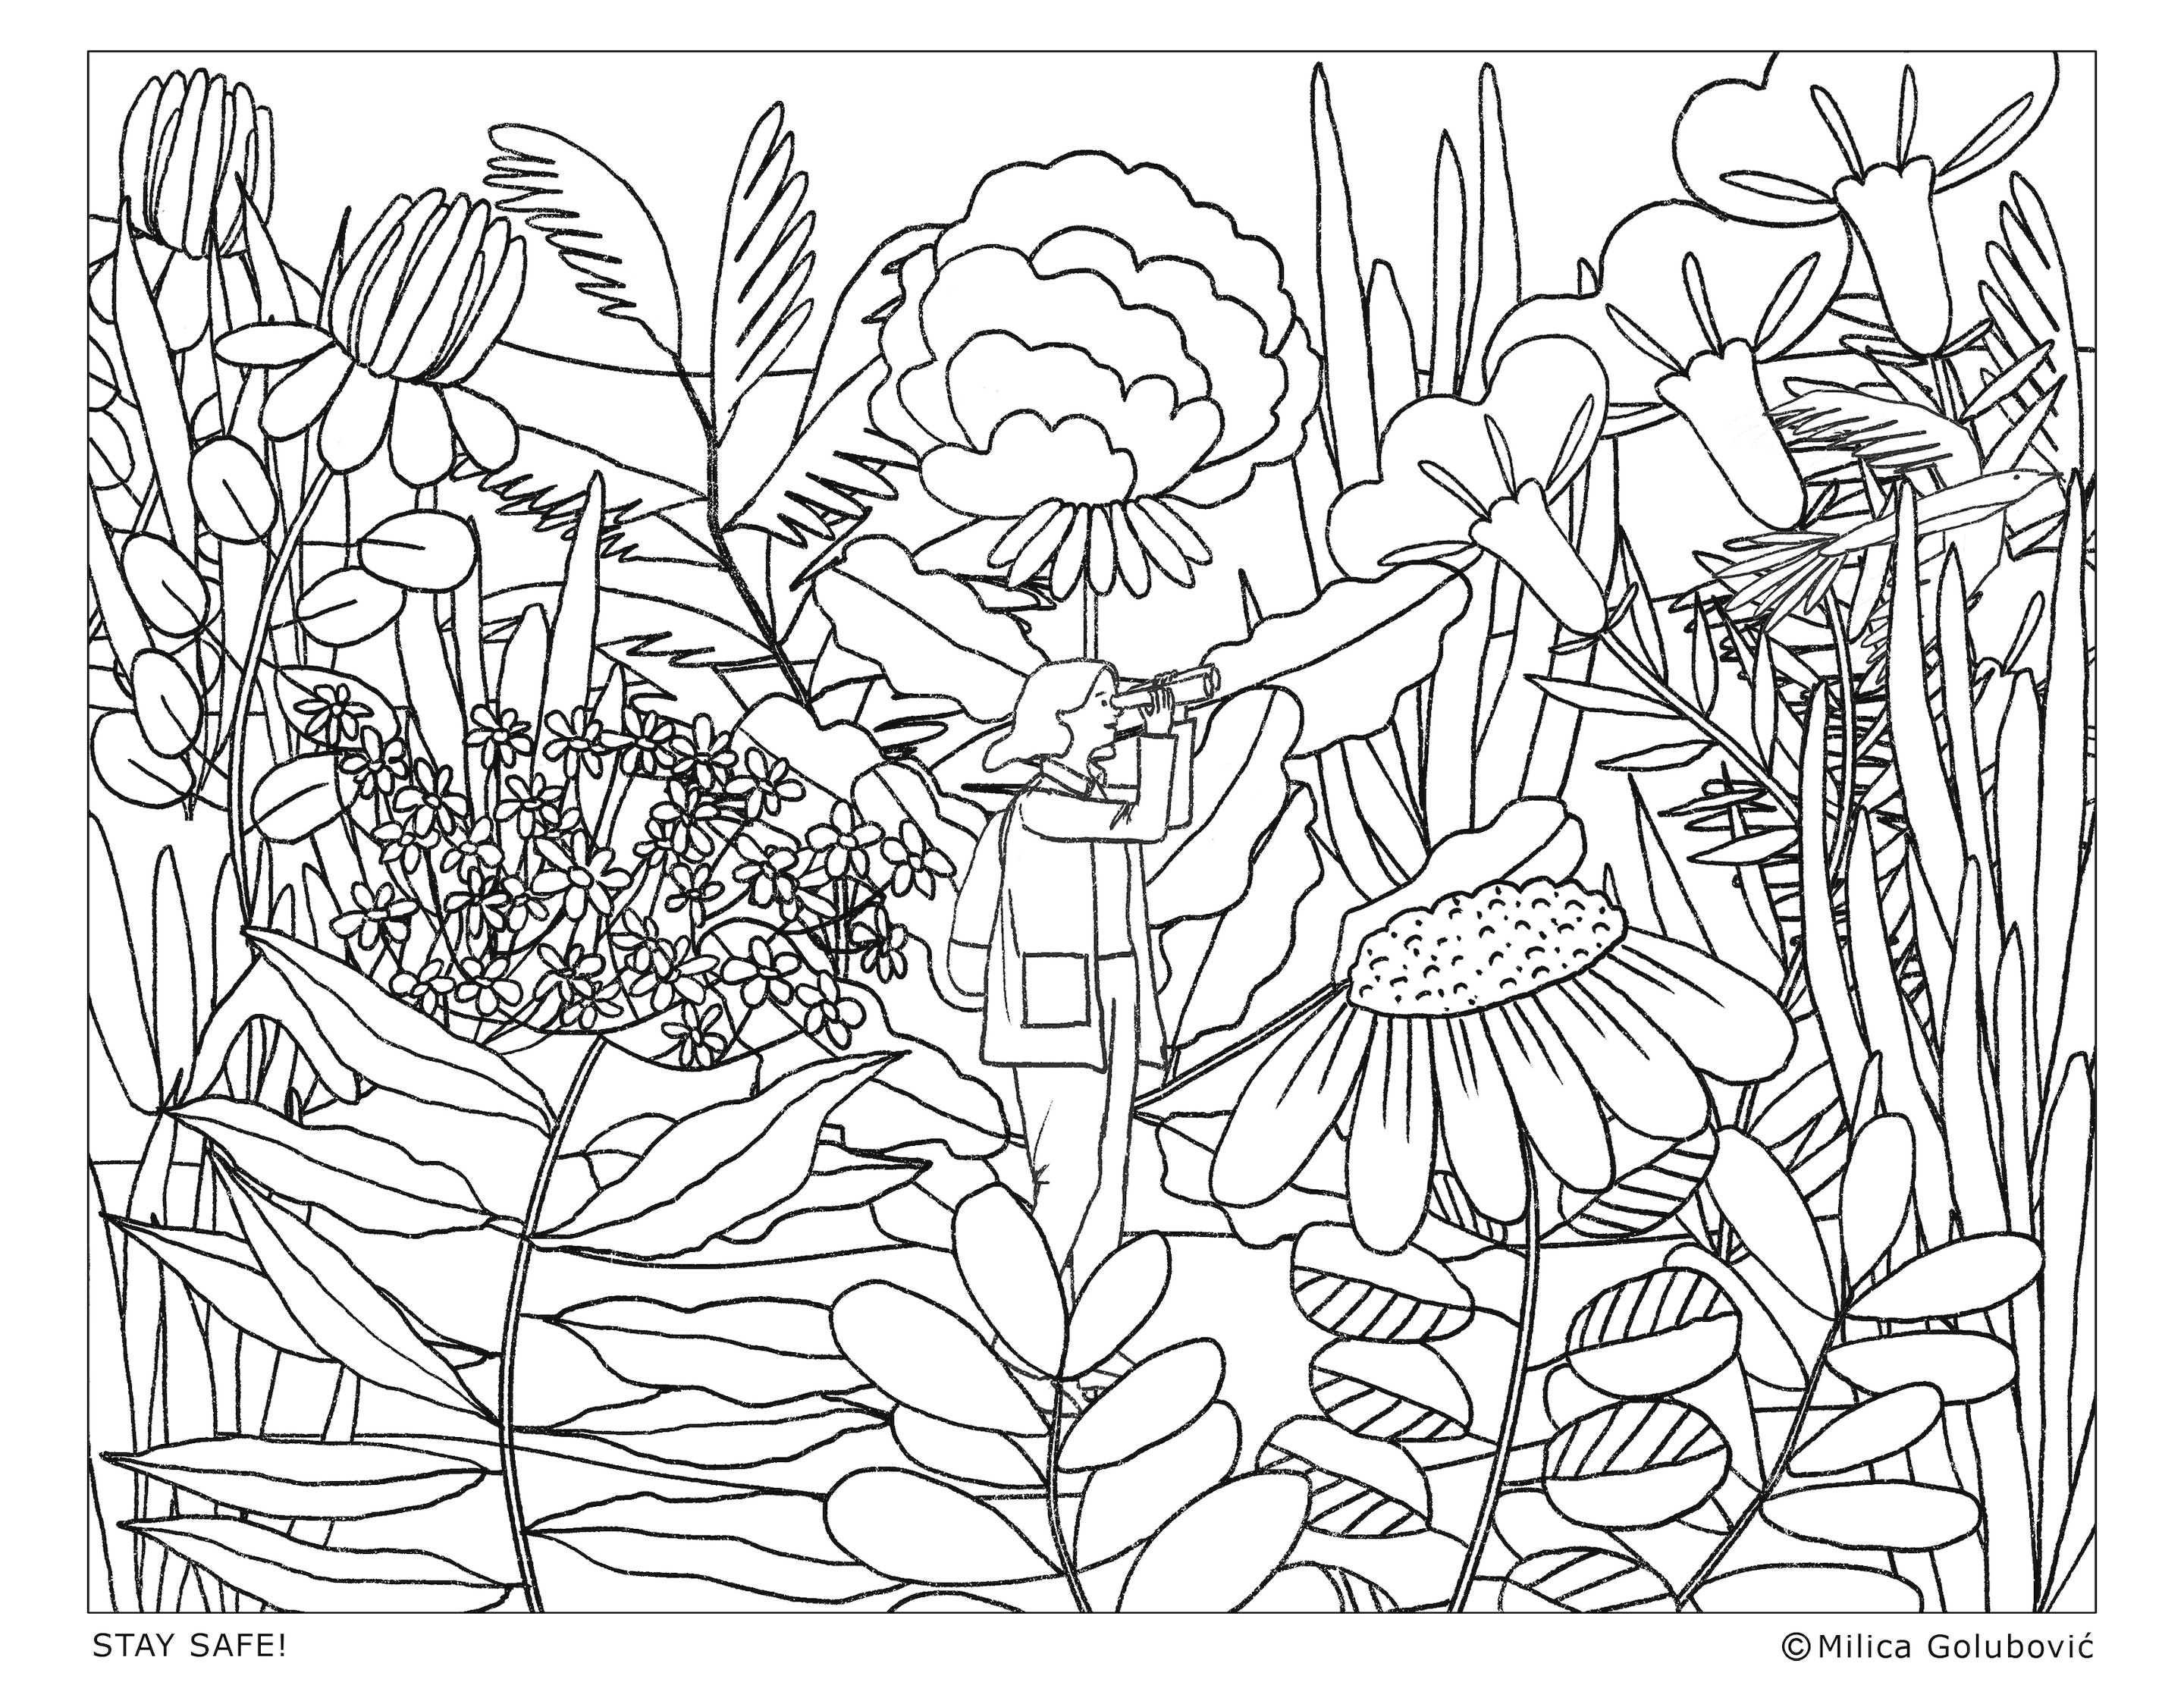 MILICA GOLUBOVIC - Earth day coloring sheet 300dpi D